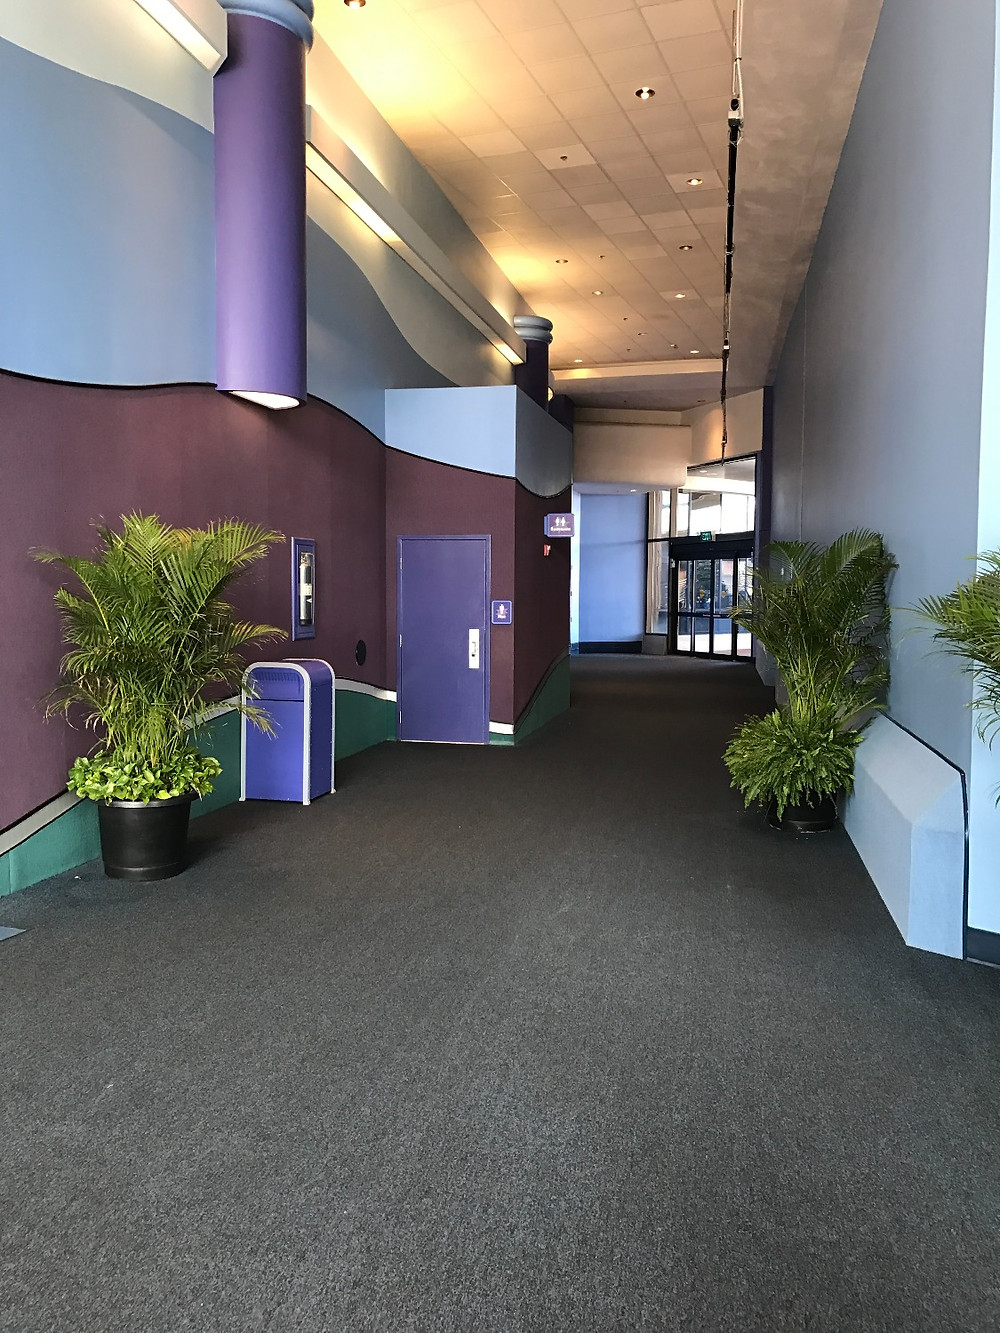 View of the Innoventions West Men's Room from the Southwest Entrance